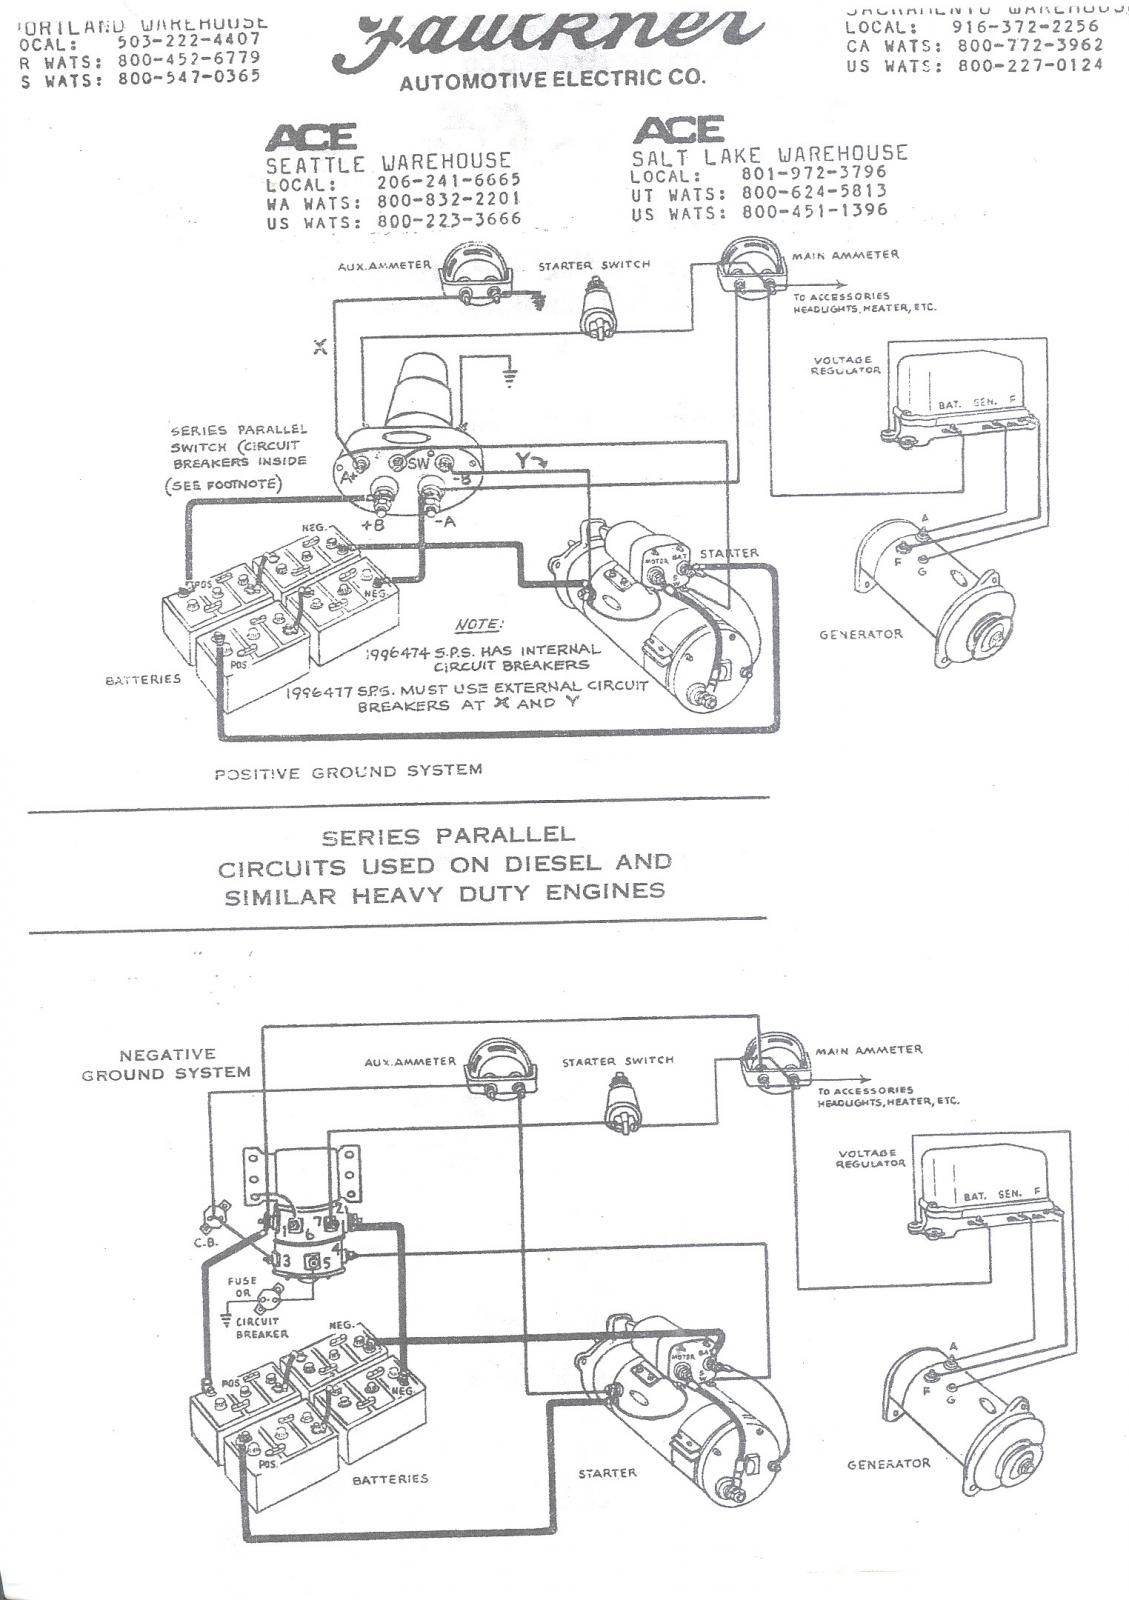 Wiring Schematic For Series Parallel Switch